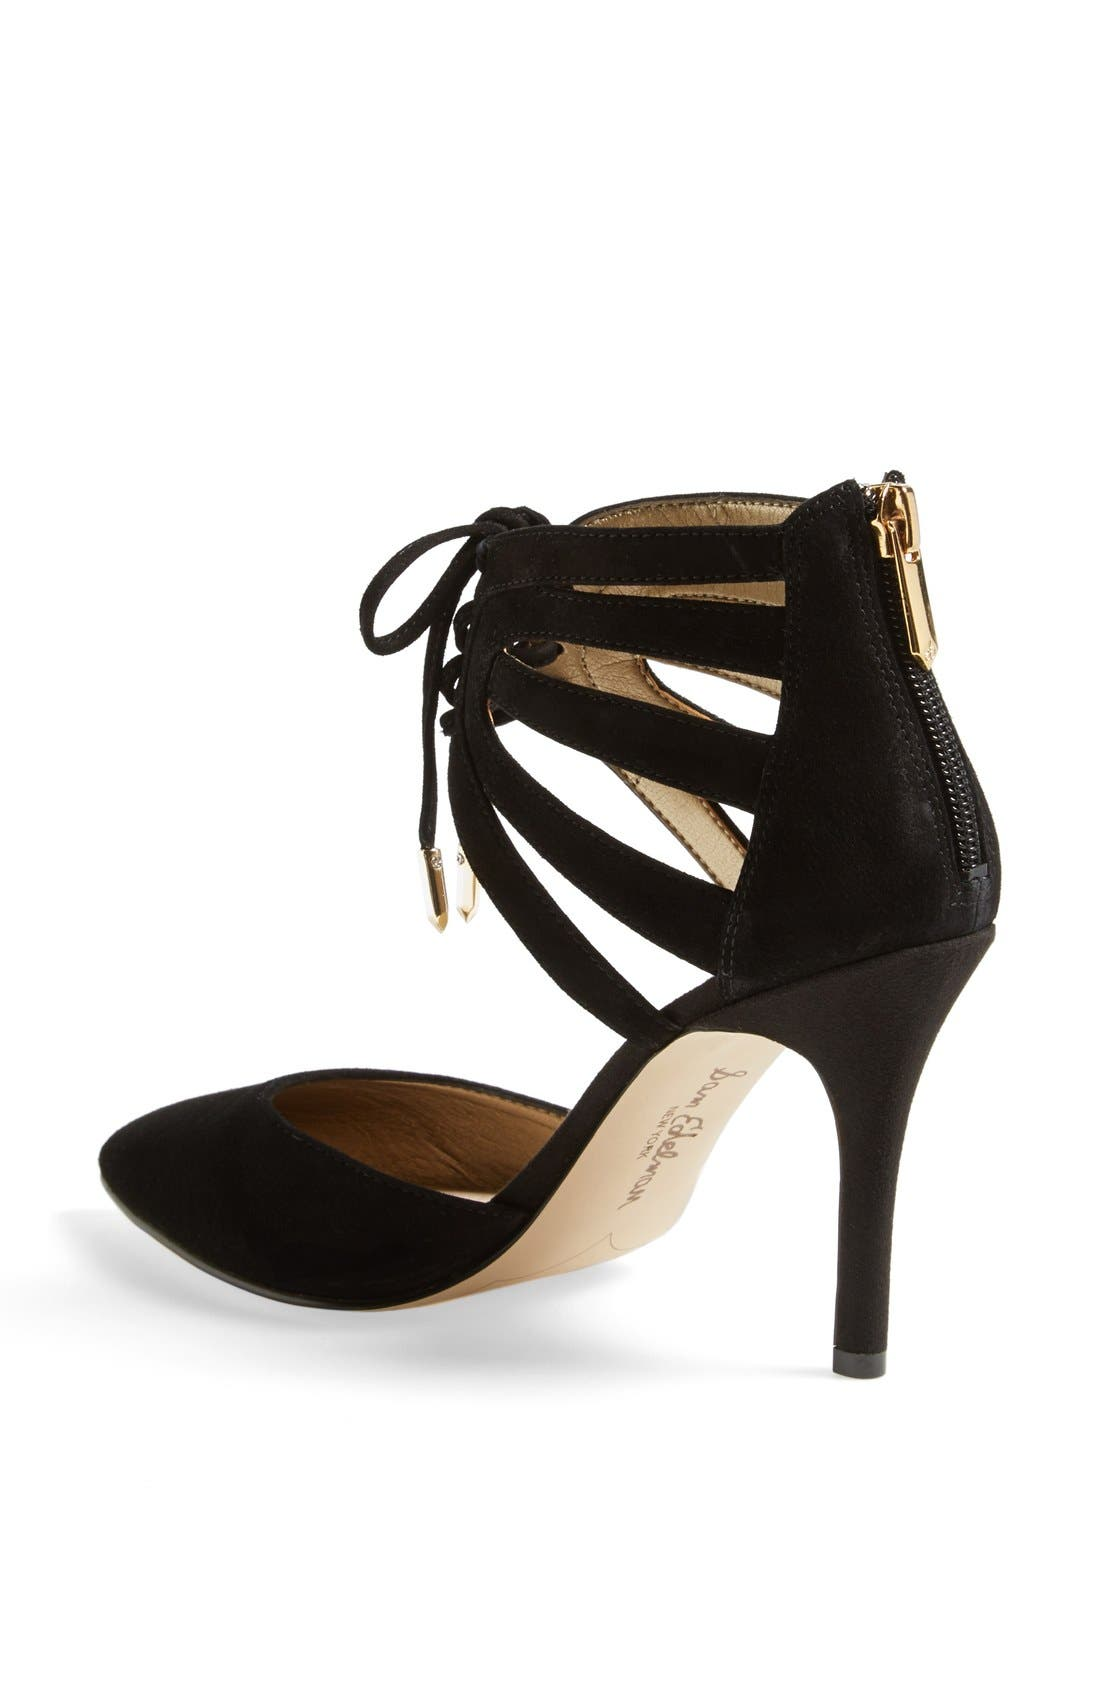 'Zachary' Cutout Ankle Cuff Suede Pump,                             Alternate thumbnail 4, color,                             001